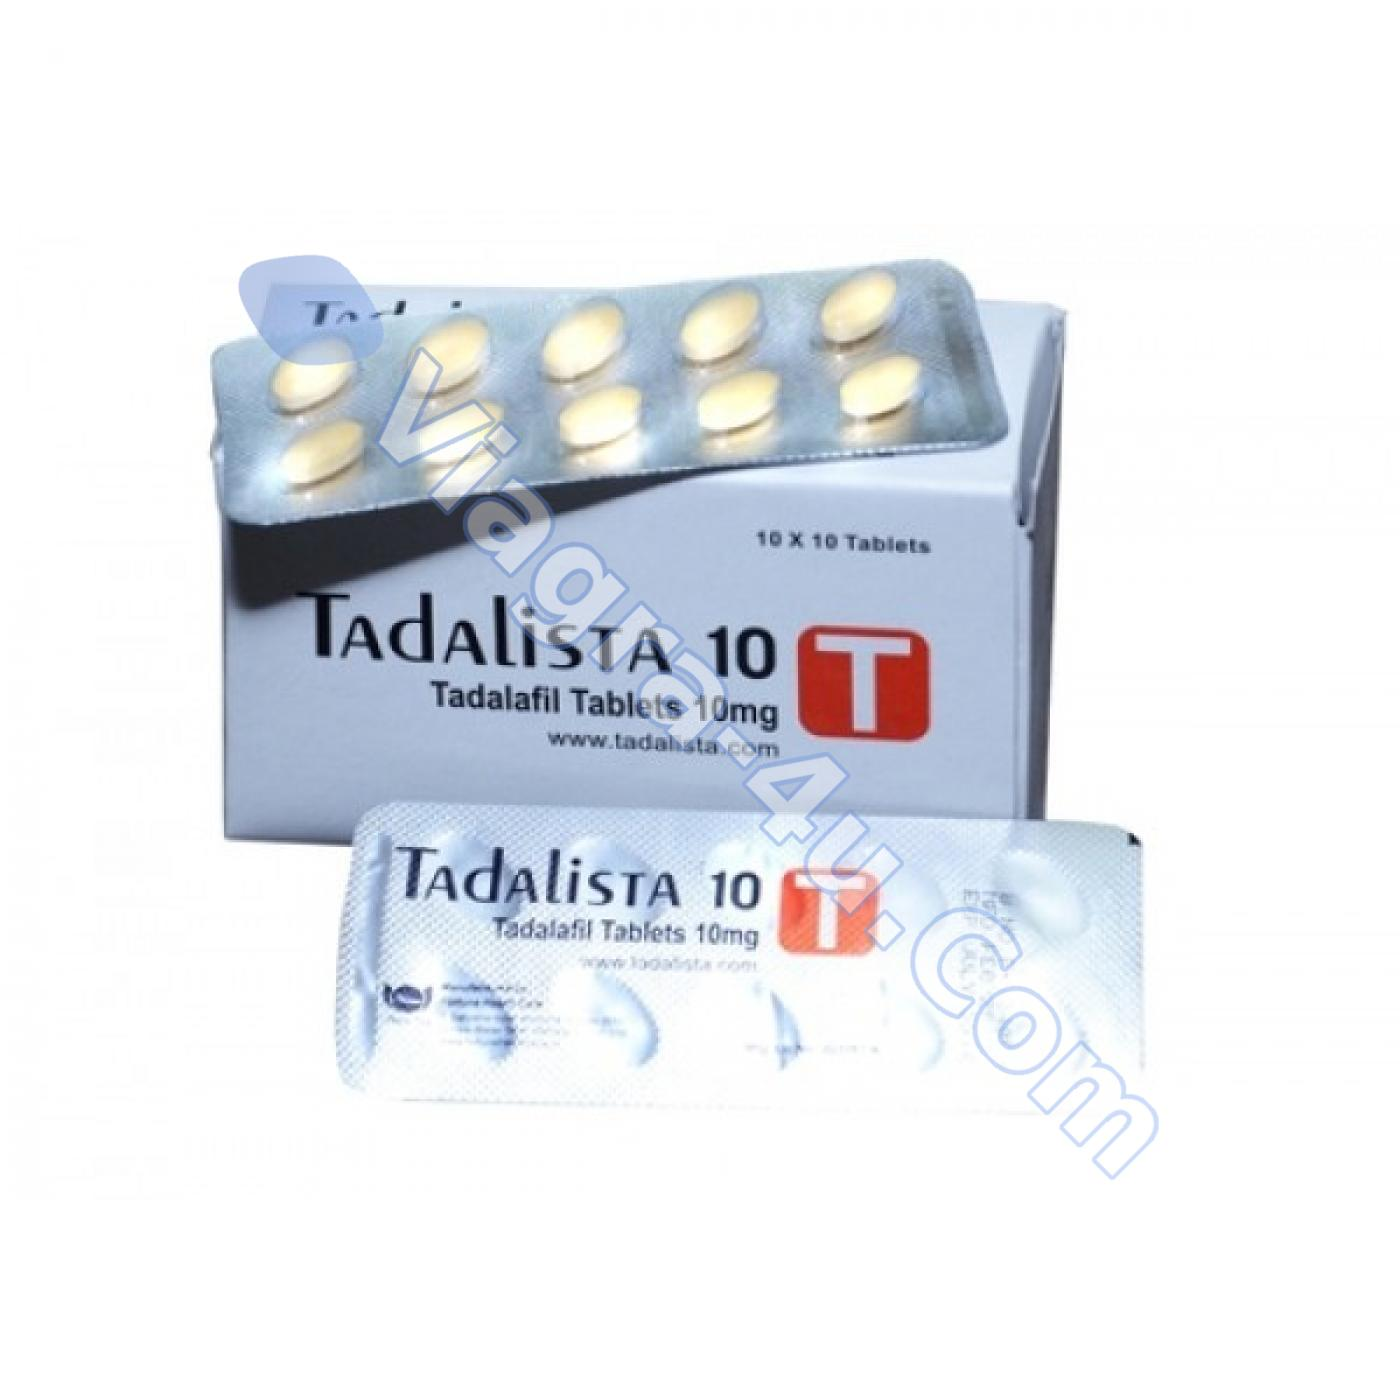 Cialis kaufen 20mg